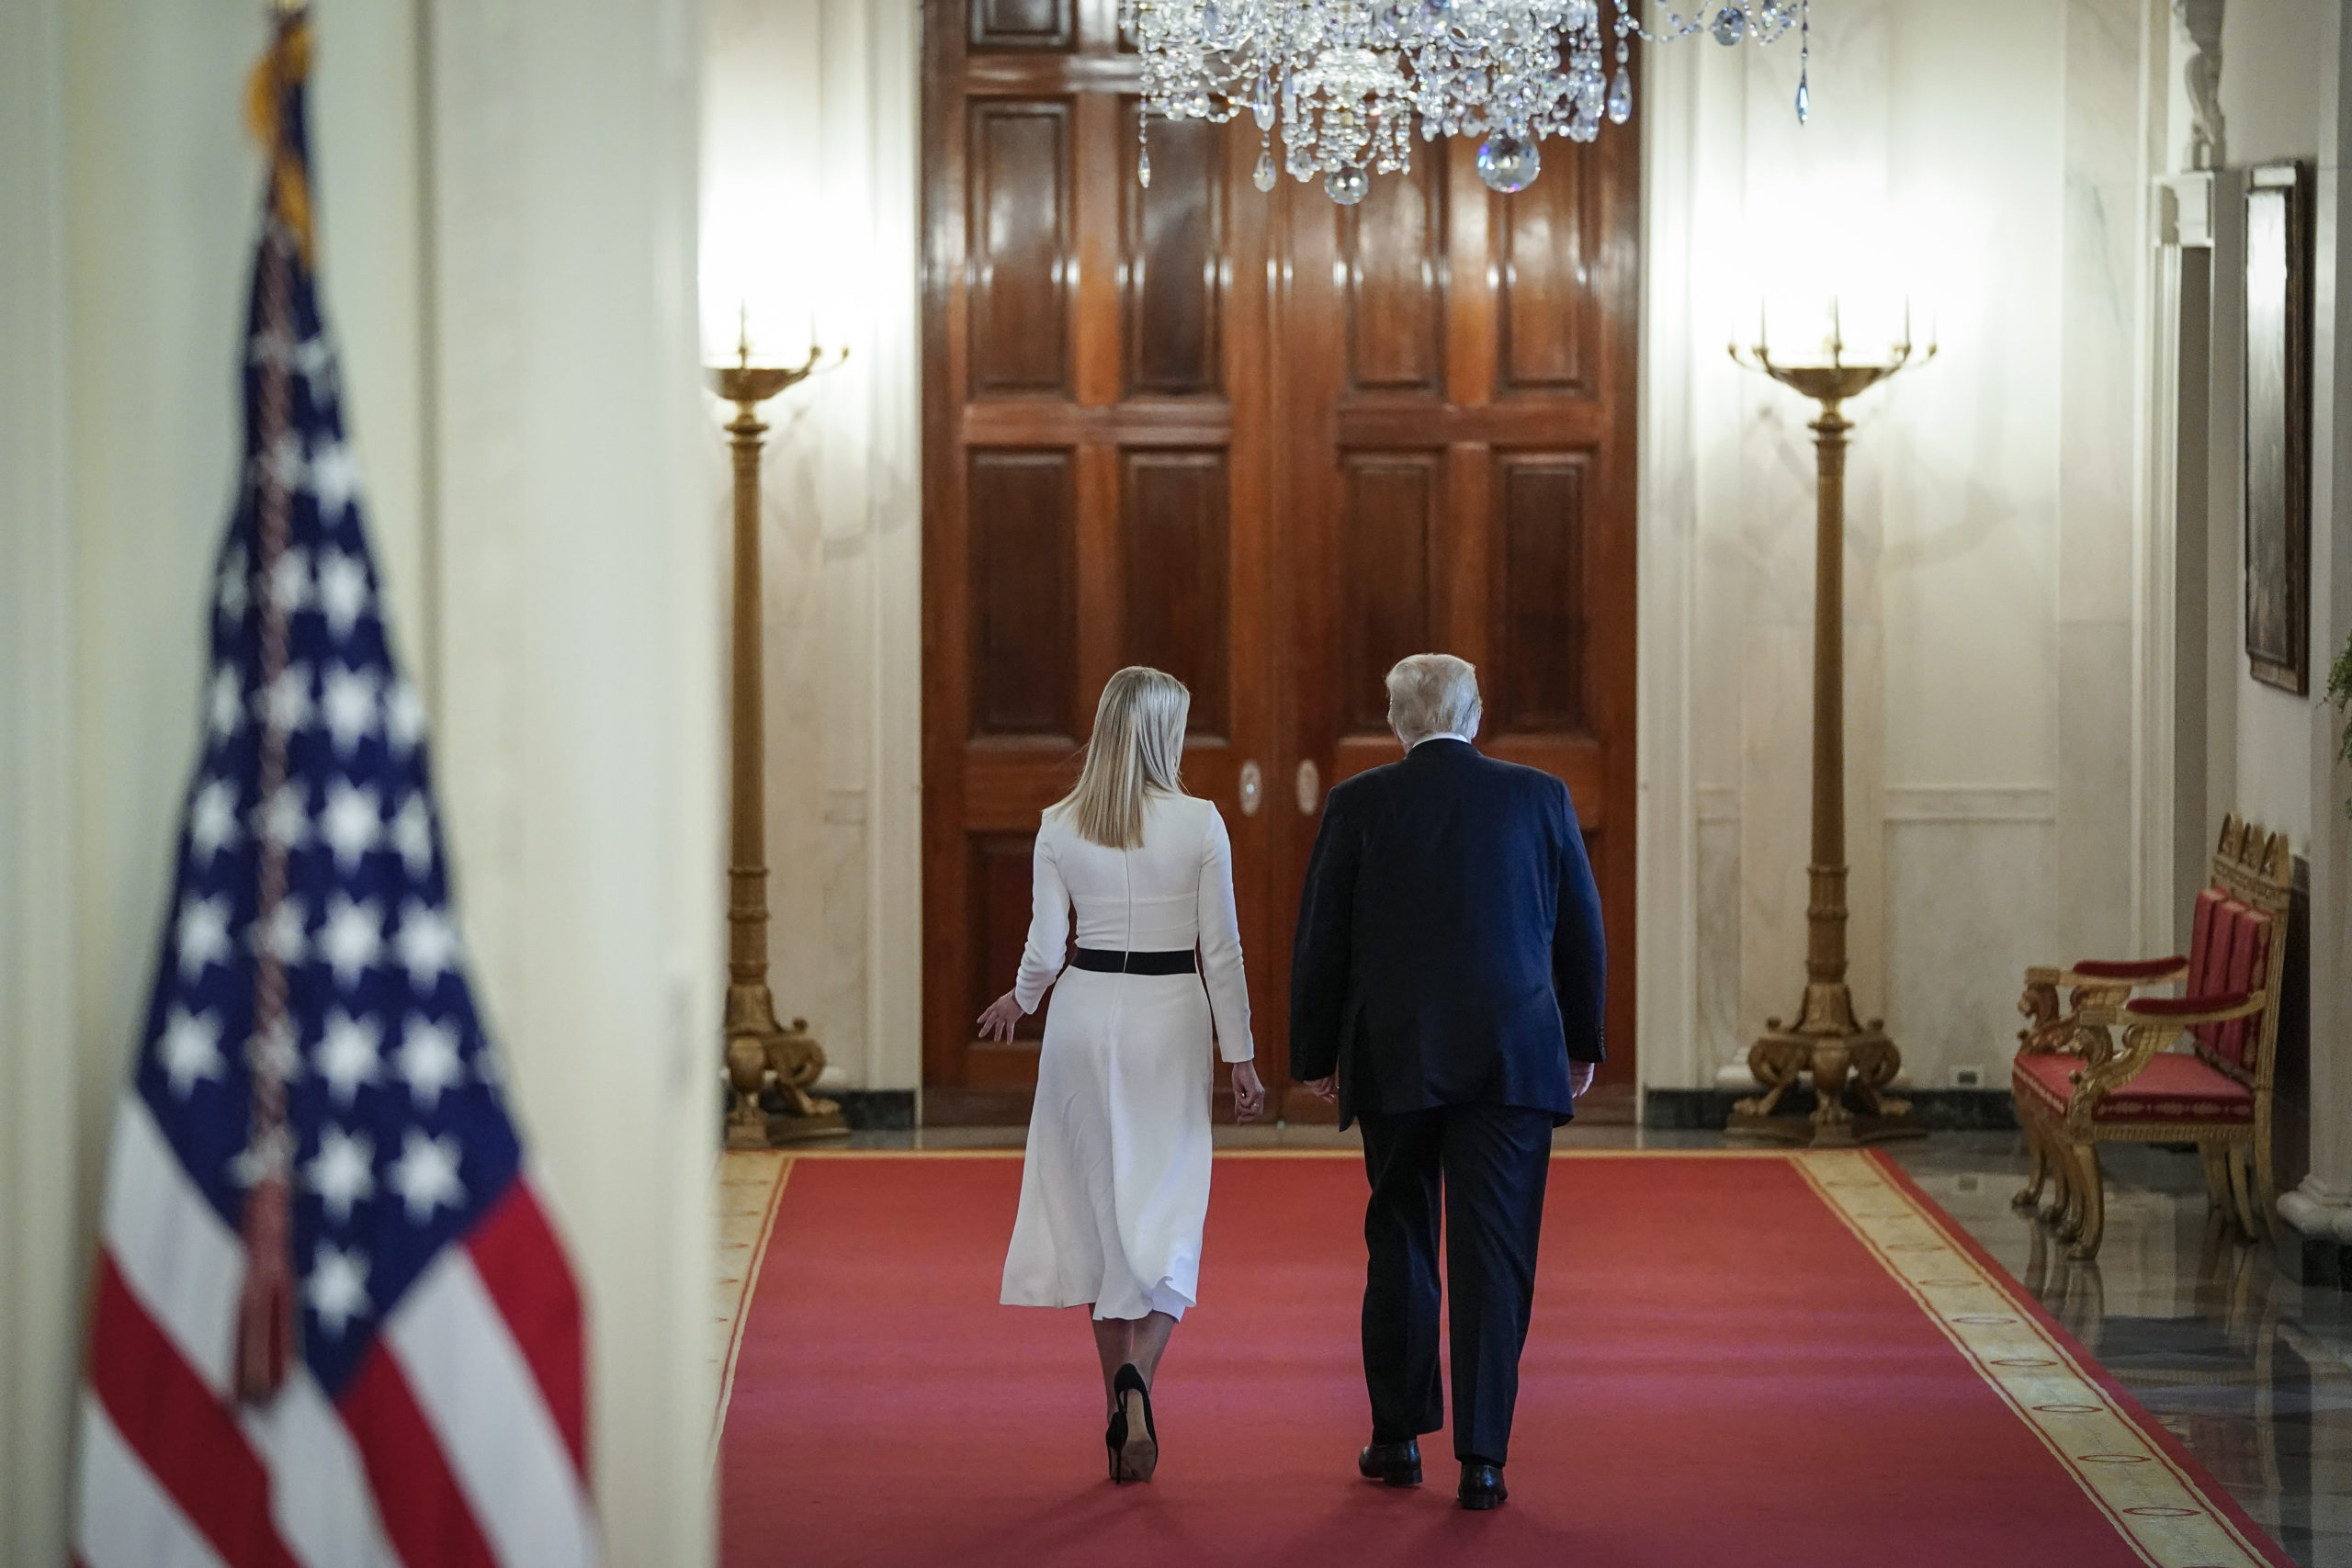 WASHINGTON, DC - JUNE 26: U.S. President Donald Trump (R) walks with White House advisor and daughter Ivanka Trump (L) as they leave a meeting of the American Workforce Policy Advisory Board in the EastRoom of the White House on June 26, 2020 in Washington, DC. Earlier in the day President Trump canceled his scheduled weekend trip to his private golf club in Bedminster, New Jersey which the state now has a mandatory 14-day quarantine for travelers coming from states with coronavirus spikes. (Photo by Drew Angerer/Getty Images)